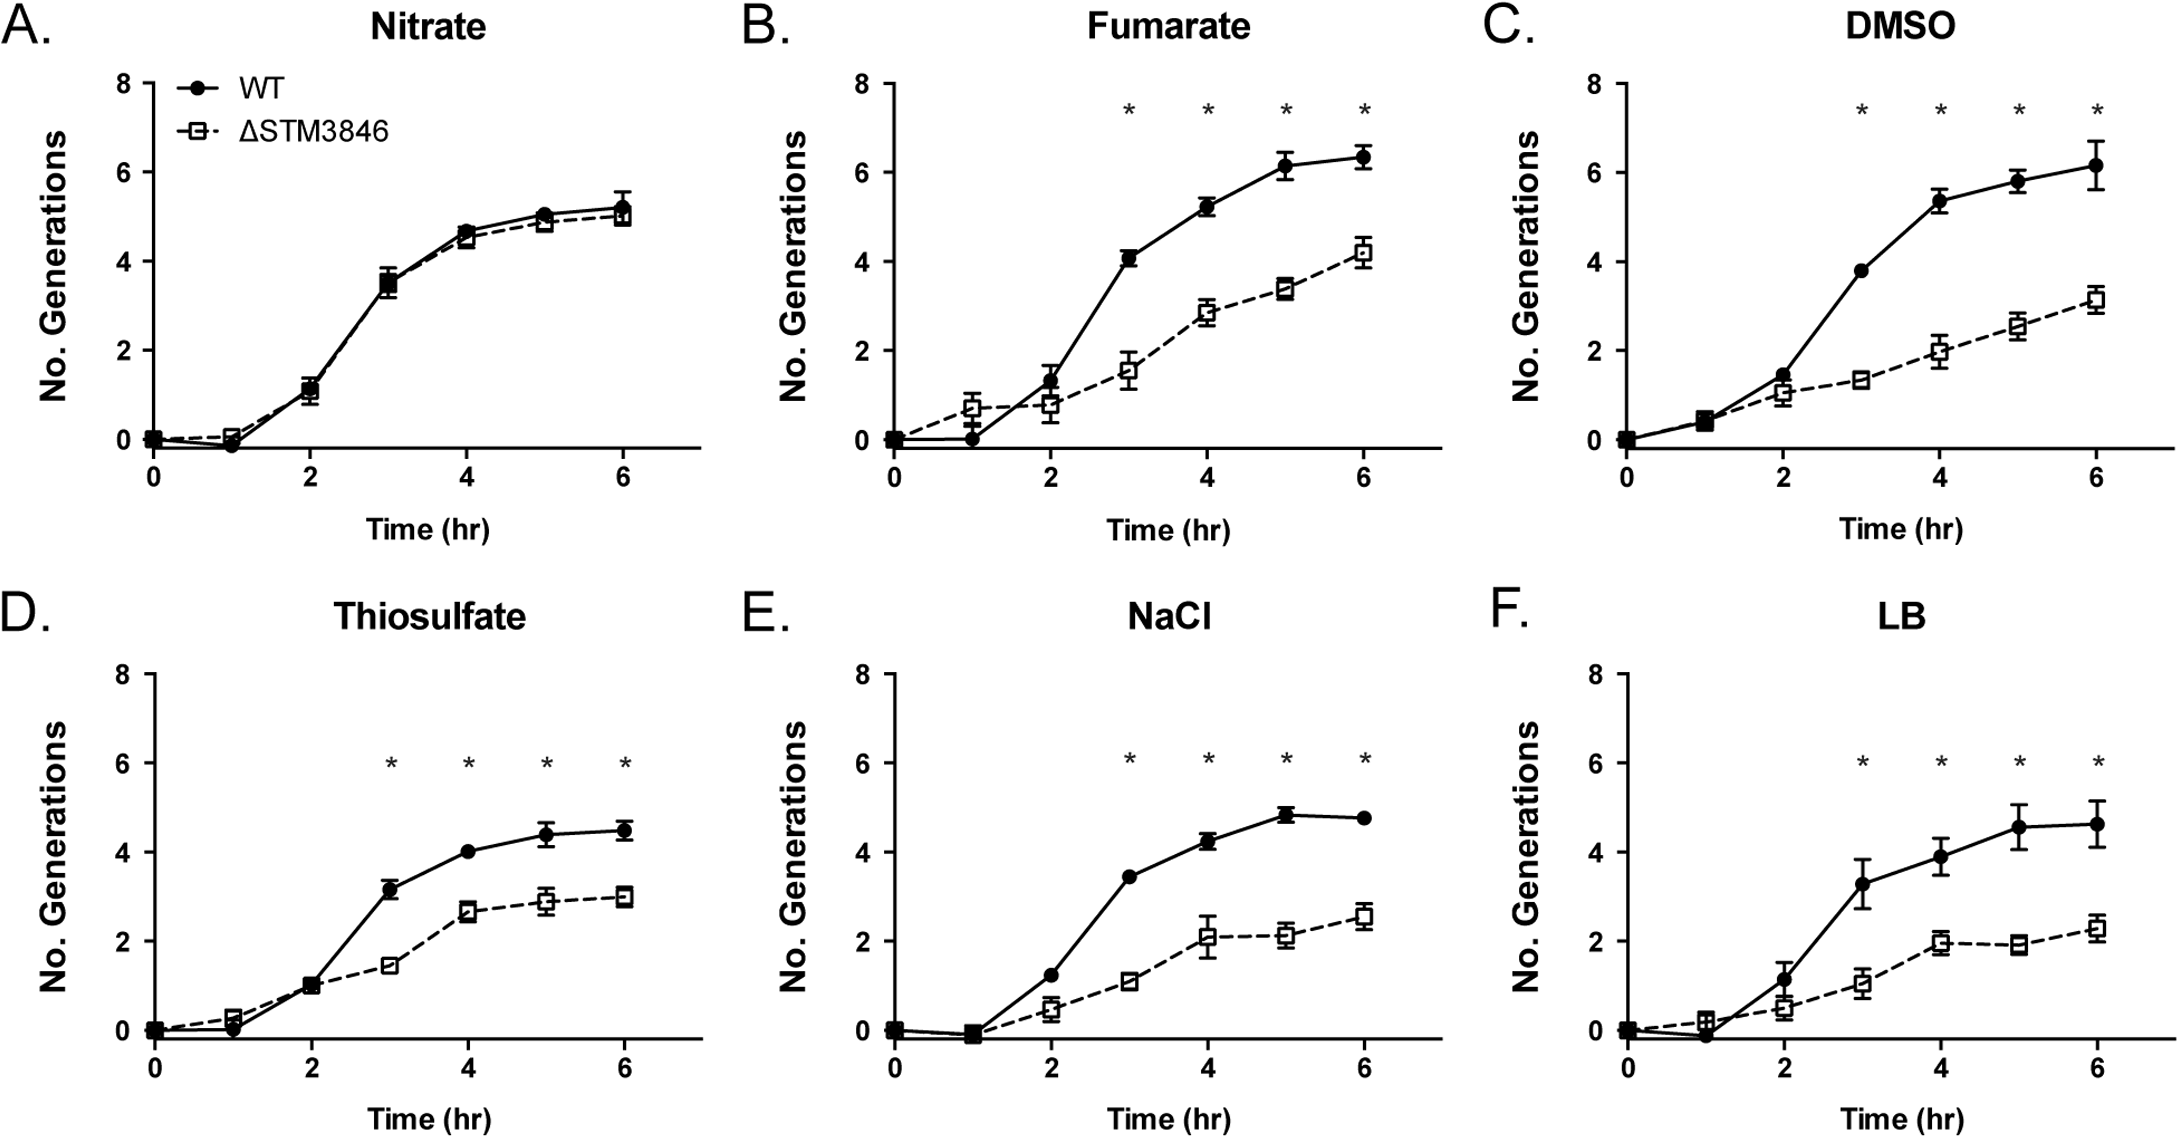 Nitrate, but not fumarate, DMSO, or thiosulfate, rescues the anaerobic growth defect of the Δ<i>STM3846</i> mutant to WT levels.